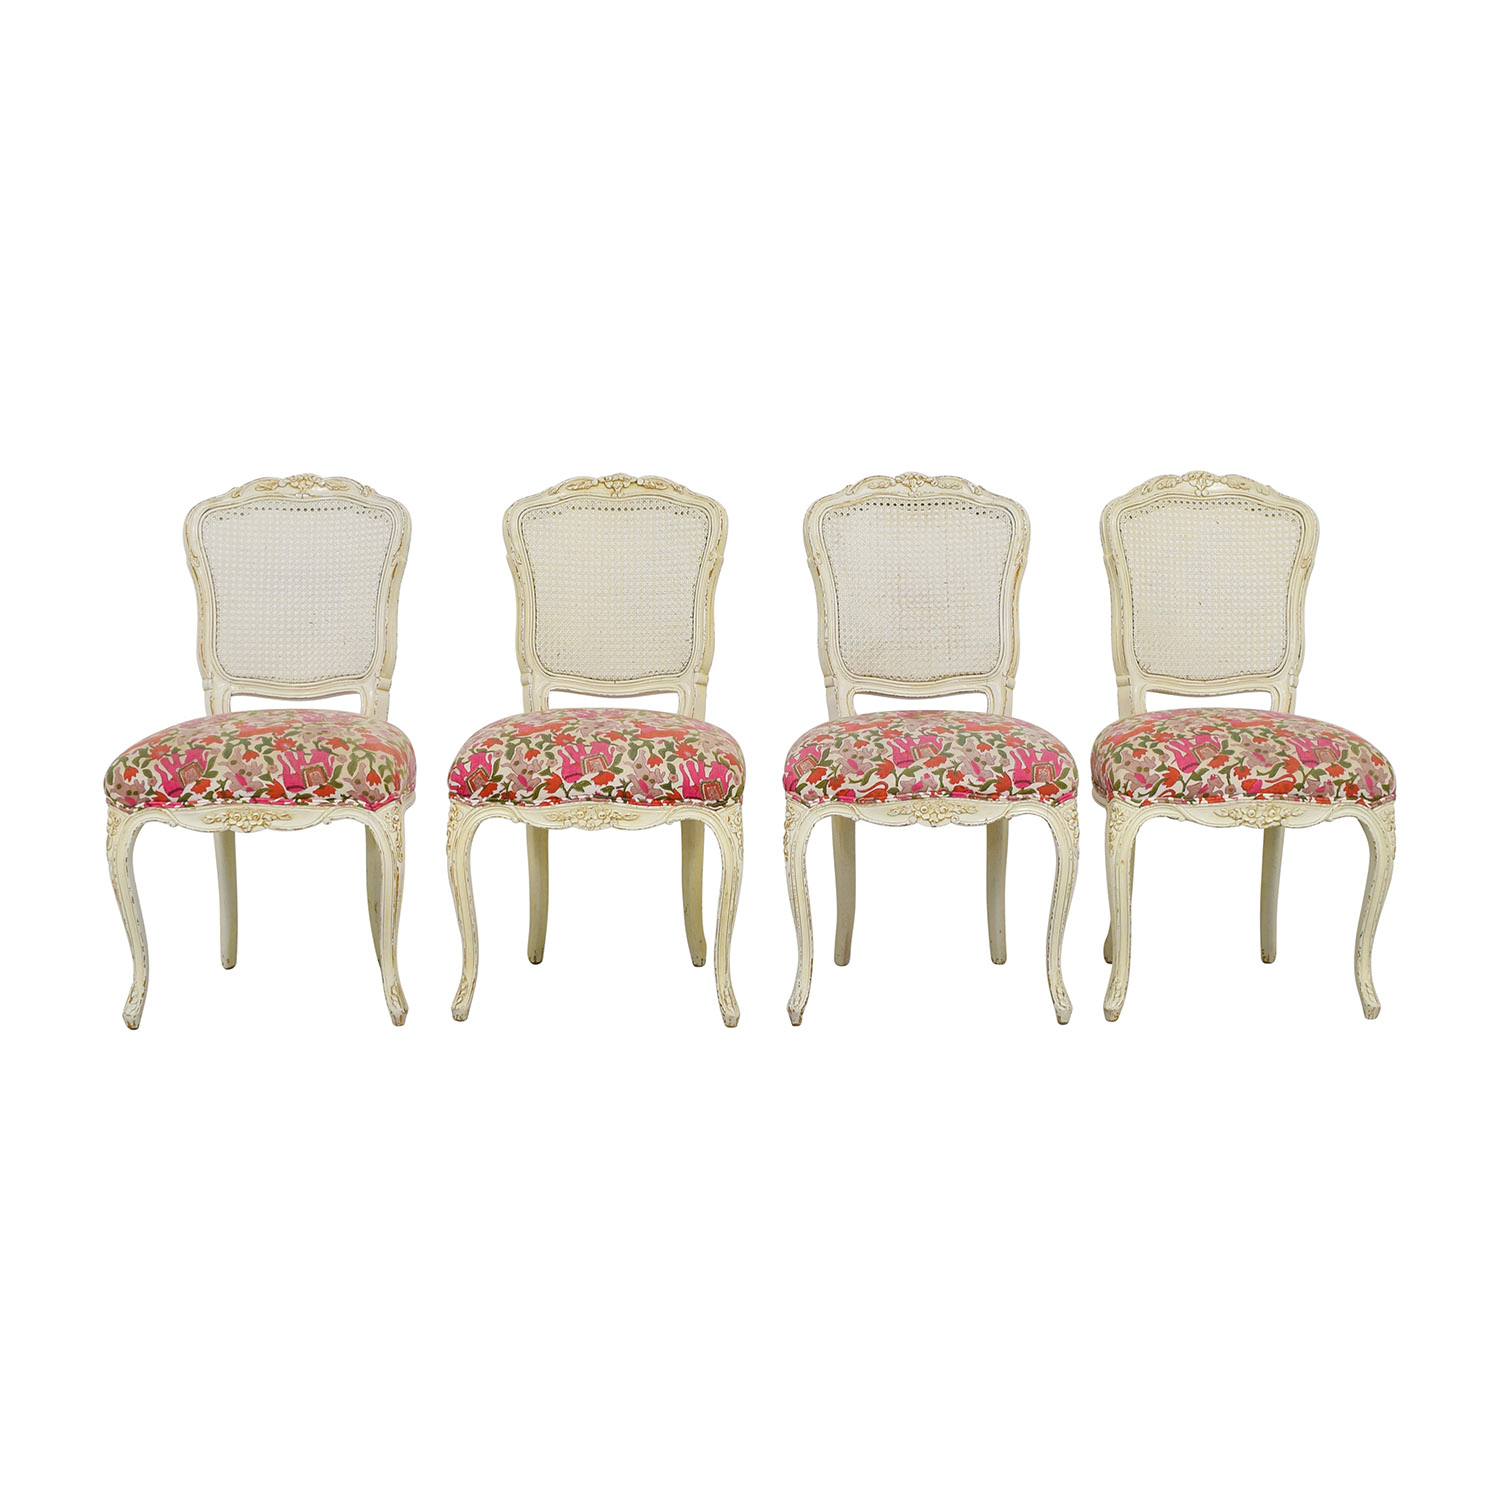 buy Rachel Ashwell Shabby Chic White Chairs Rachel Ashwell Chairs